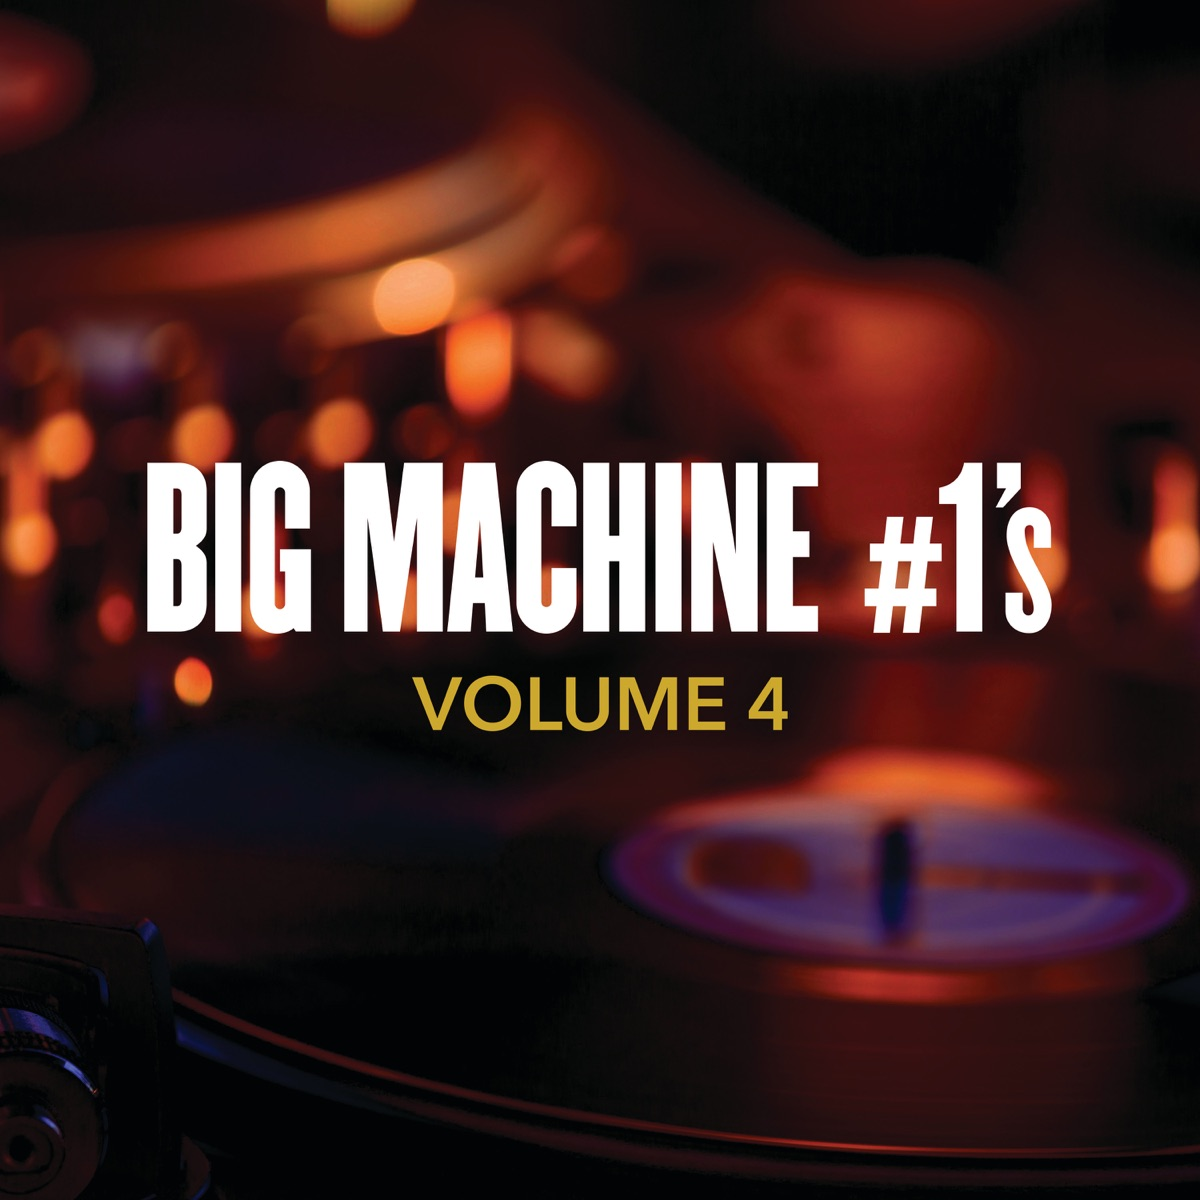 Big Machine 1s Vol 4 Various Artists CD cover